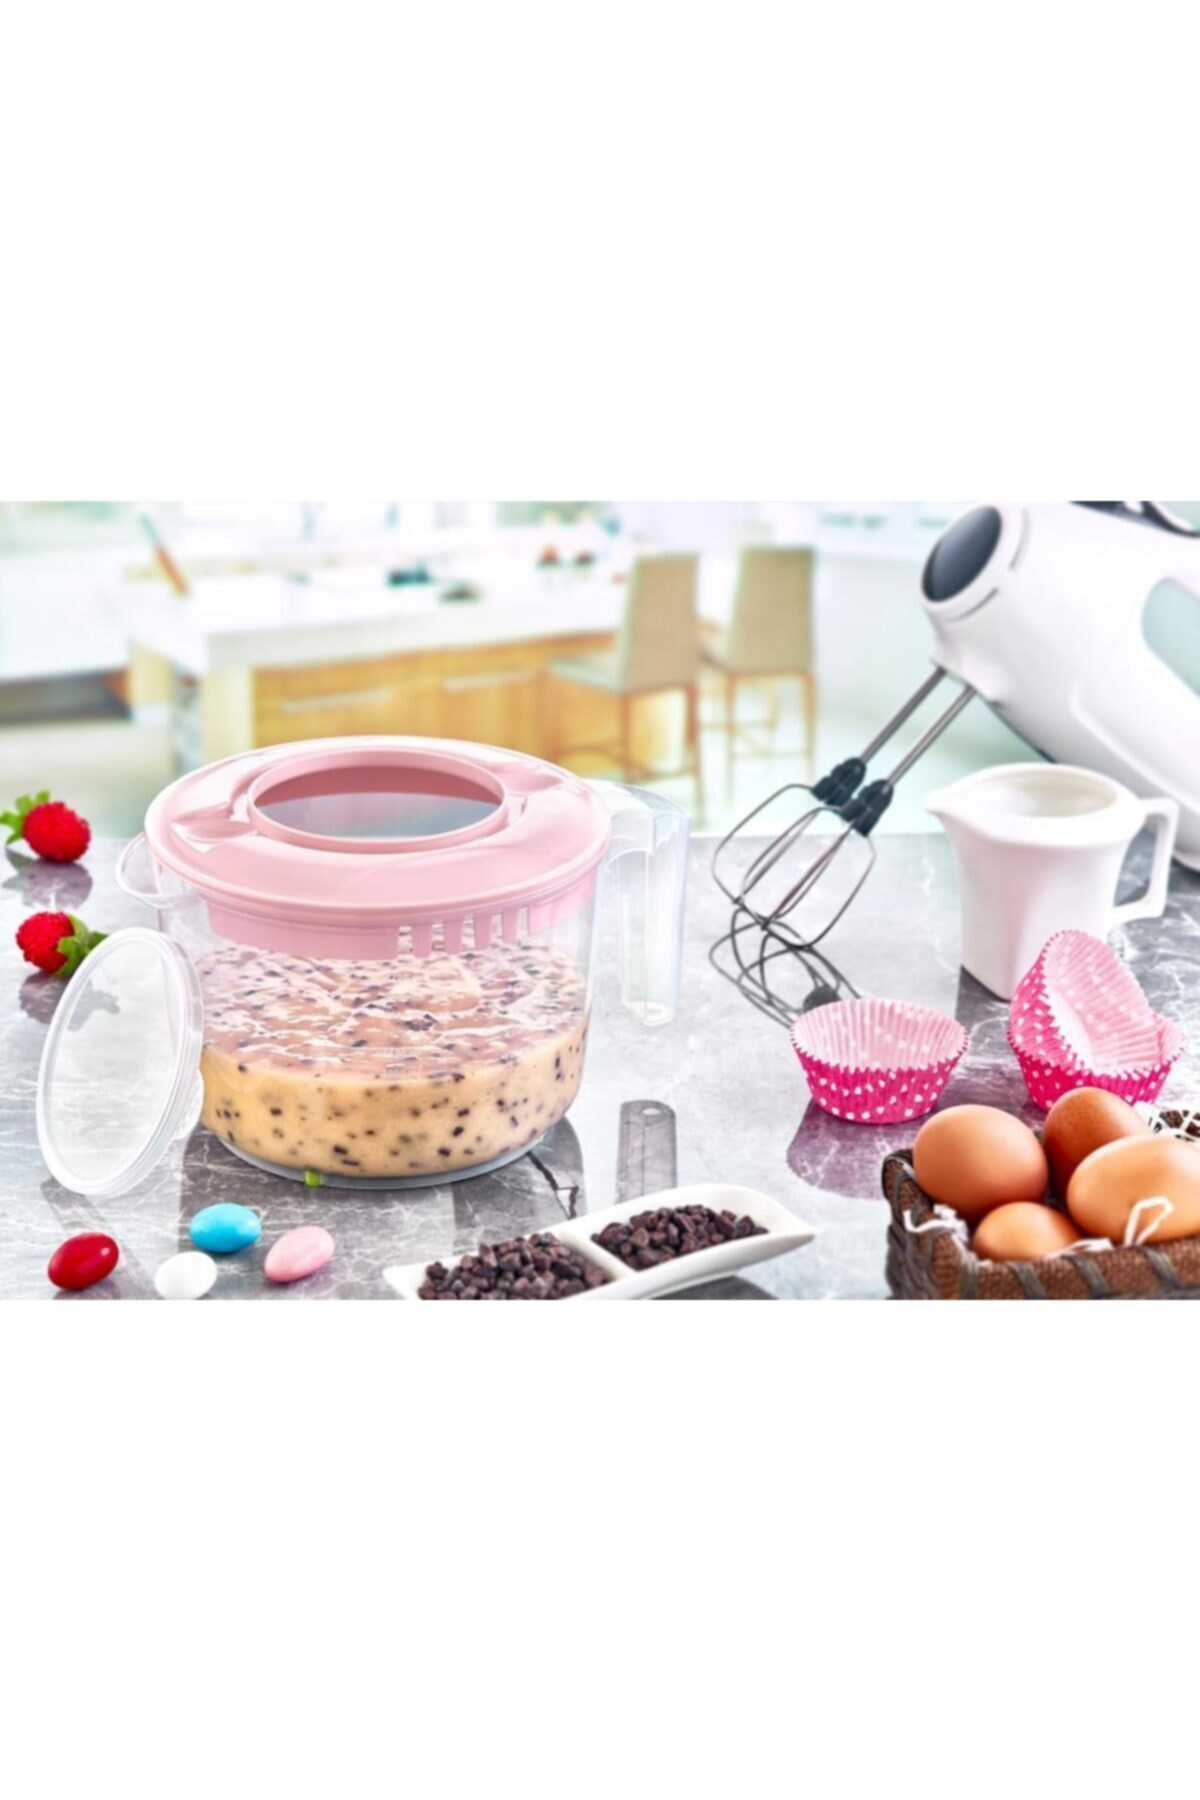 Angel Of Life Mixer Container With Lid (2500 Ml) - Kapaklı Mixer Kabı (2500 Ml) 2